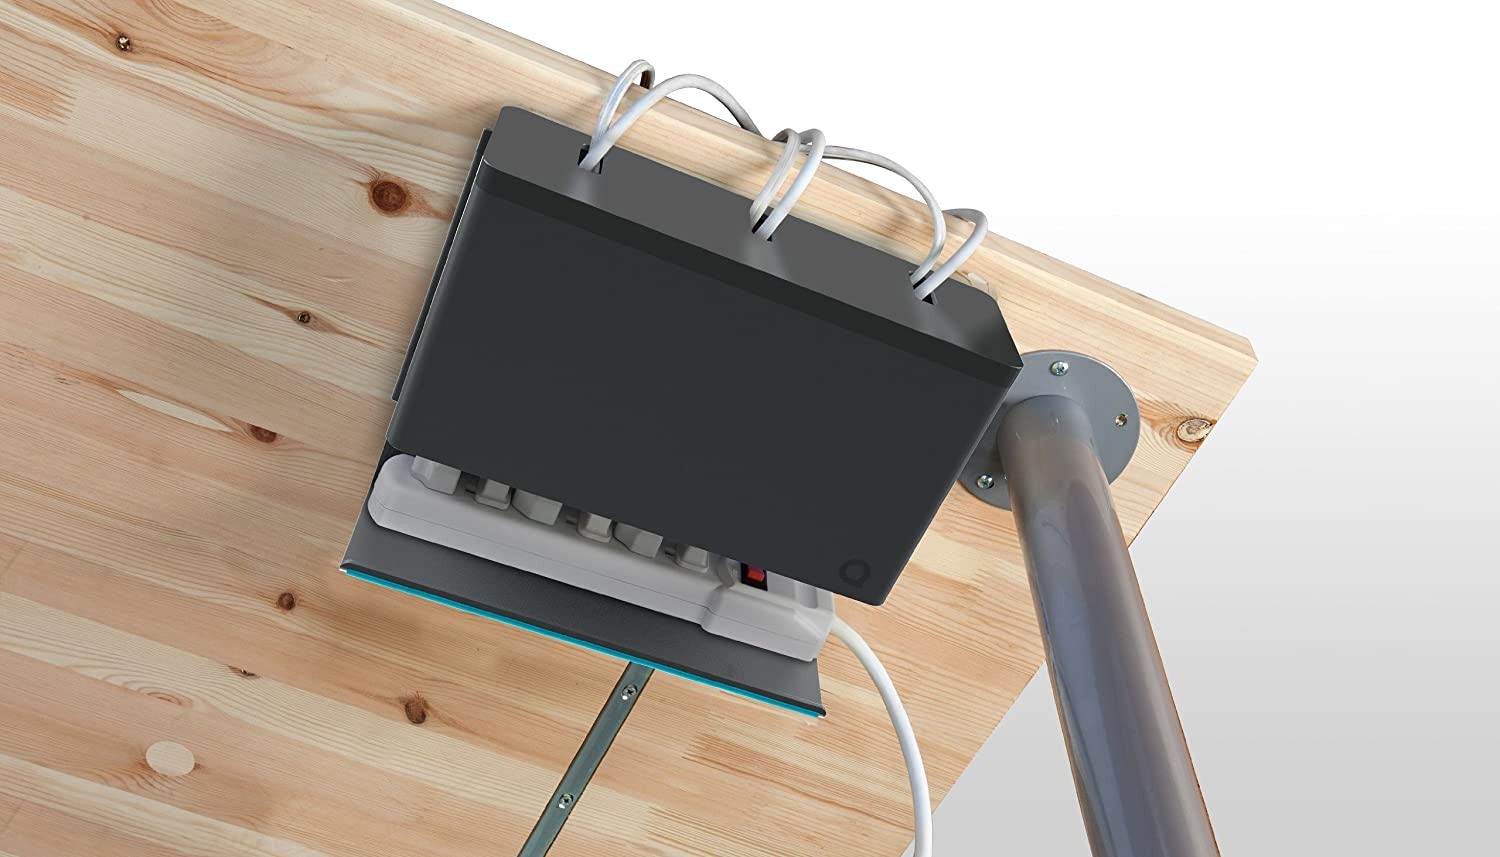 Quirky - Organizador de Cables para Debajo del Escritorio: Amazon ...